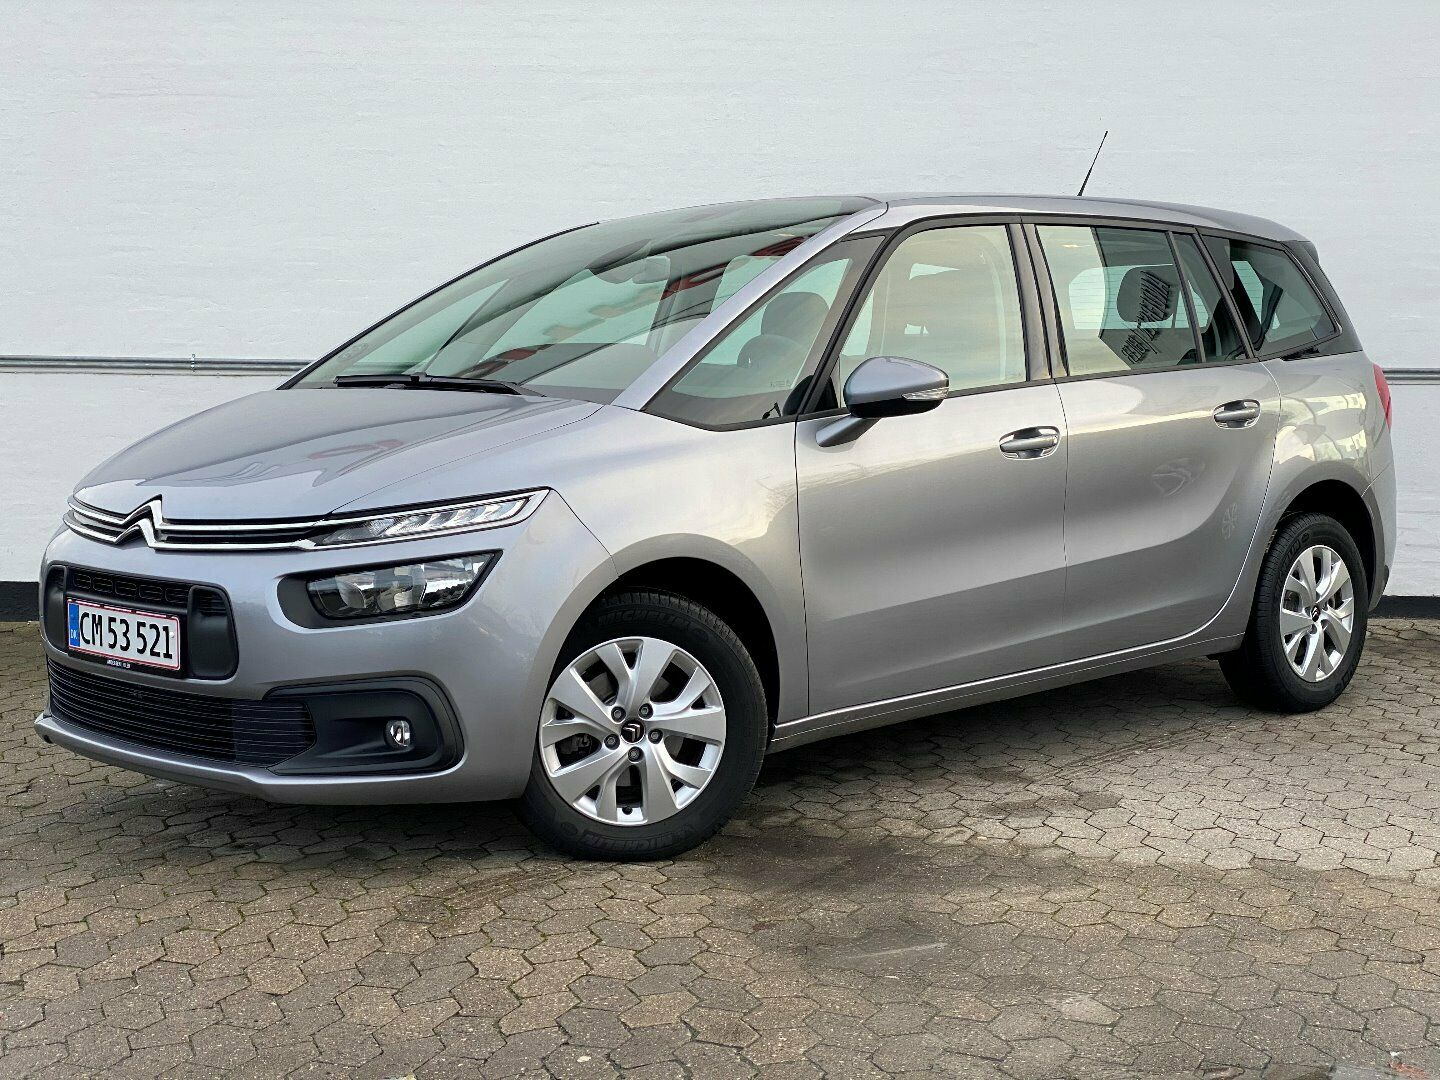 Citroën Grand C4 SpaceTourer 1,5 BlueHDi 130 Platinum 5d - 249.900 kr.